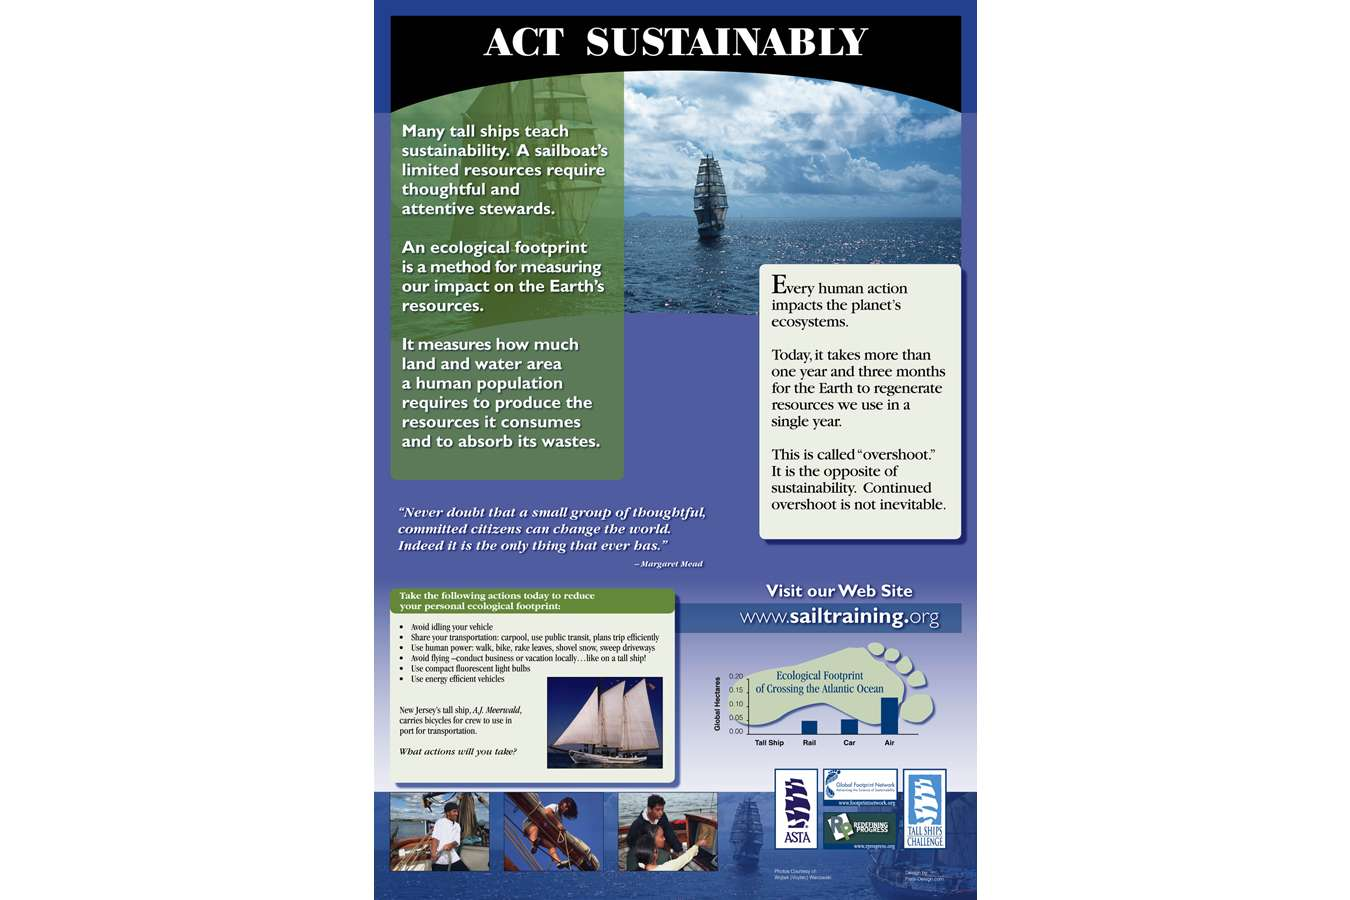 ASTA PF Sustain act : At sea education includes teaching sustainability